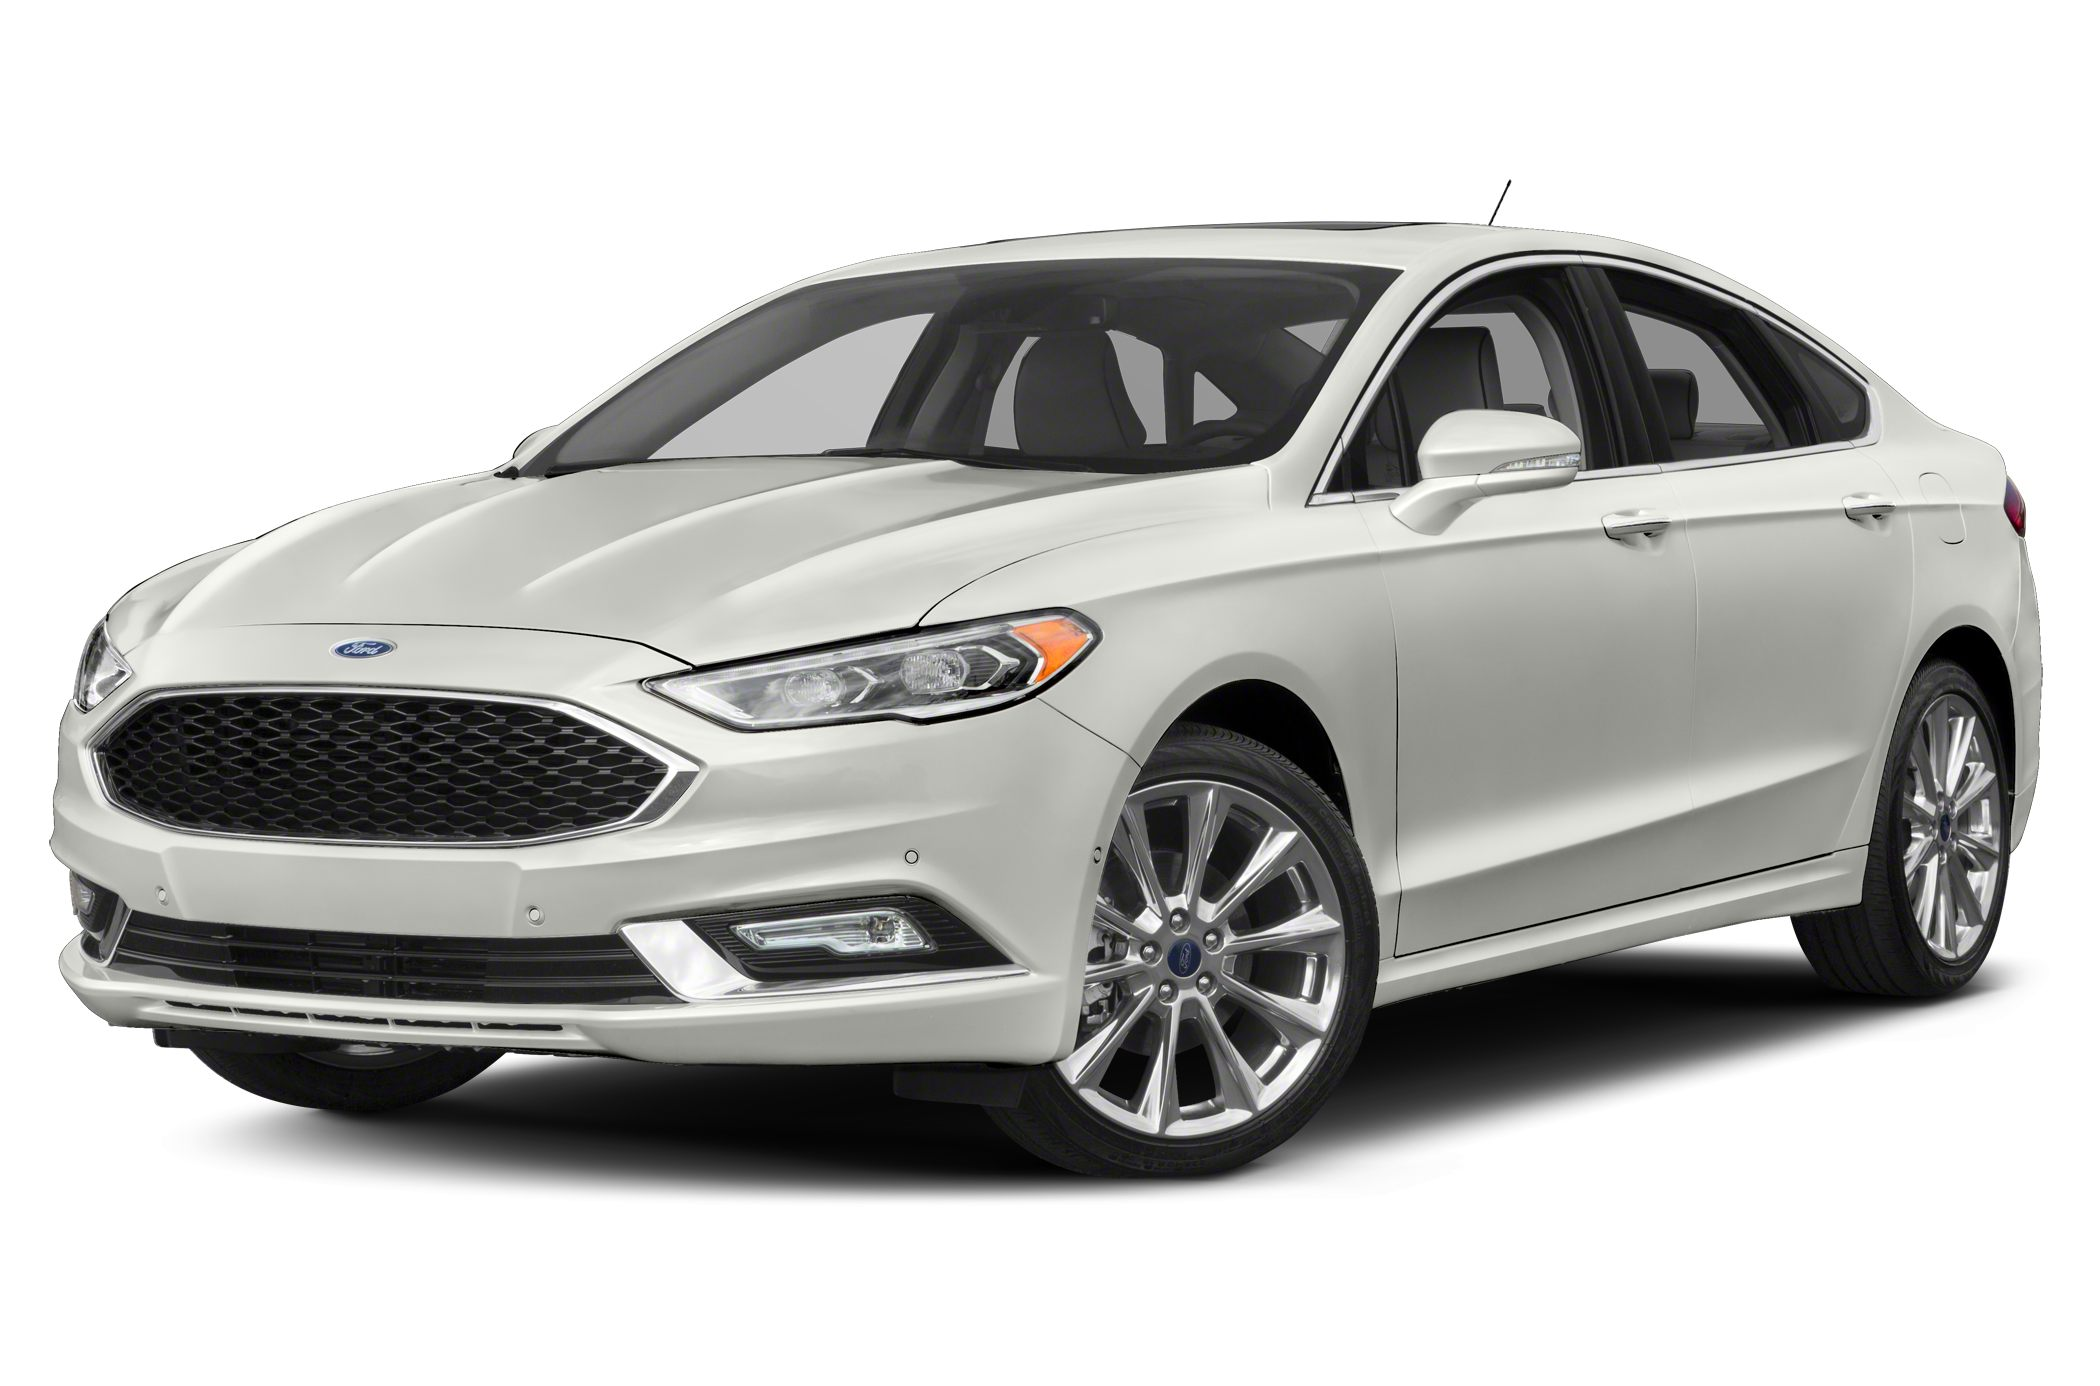 2017 Ford Fusion Platinum 2017 Ford Fusion Platinum 3121 HighwayCity MPG Price includes 500 -